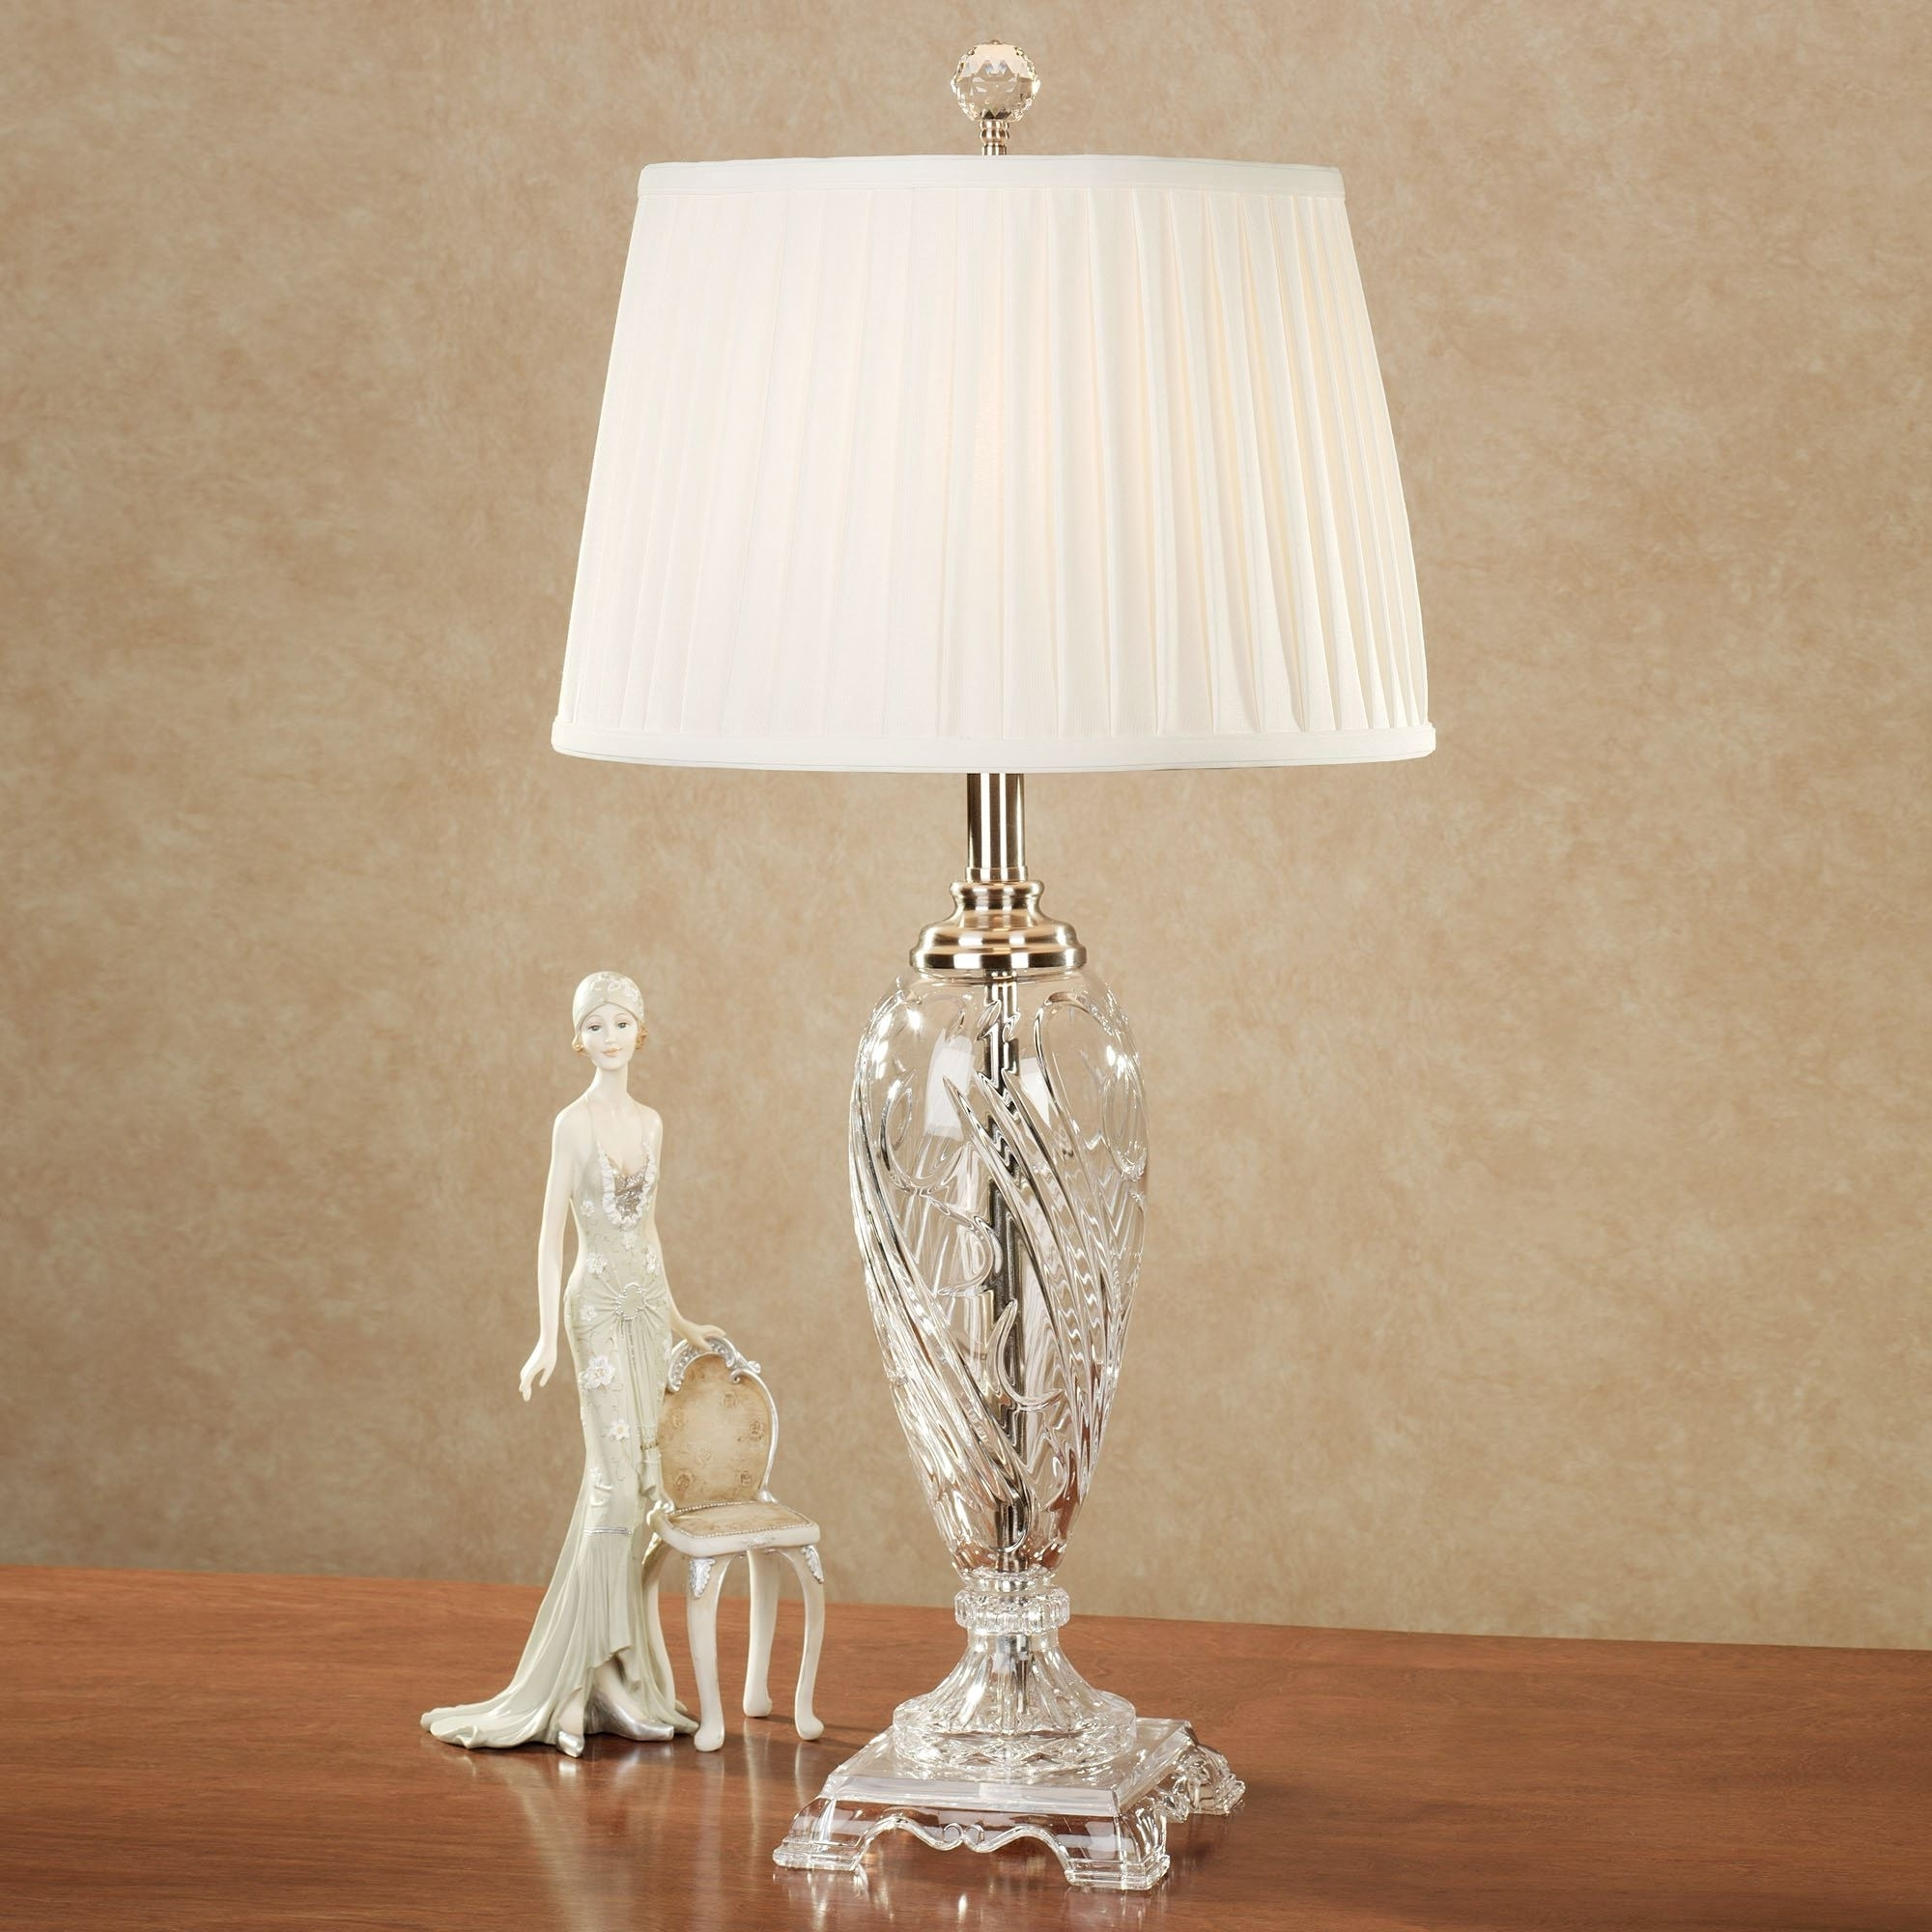 Trendy Morgana Crystal Table Lampdale Tiffany Crystal For Chandelier Night Stand Lamps (View 6 of 20)